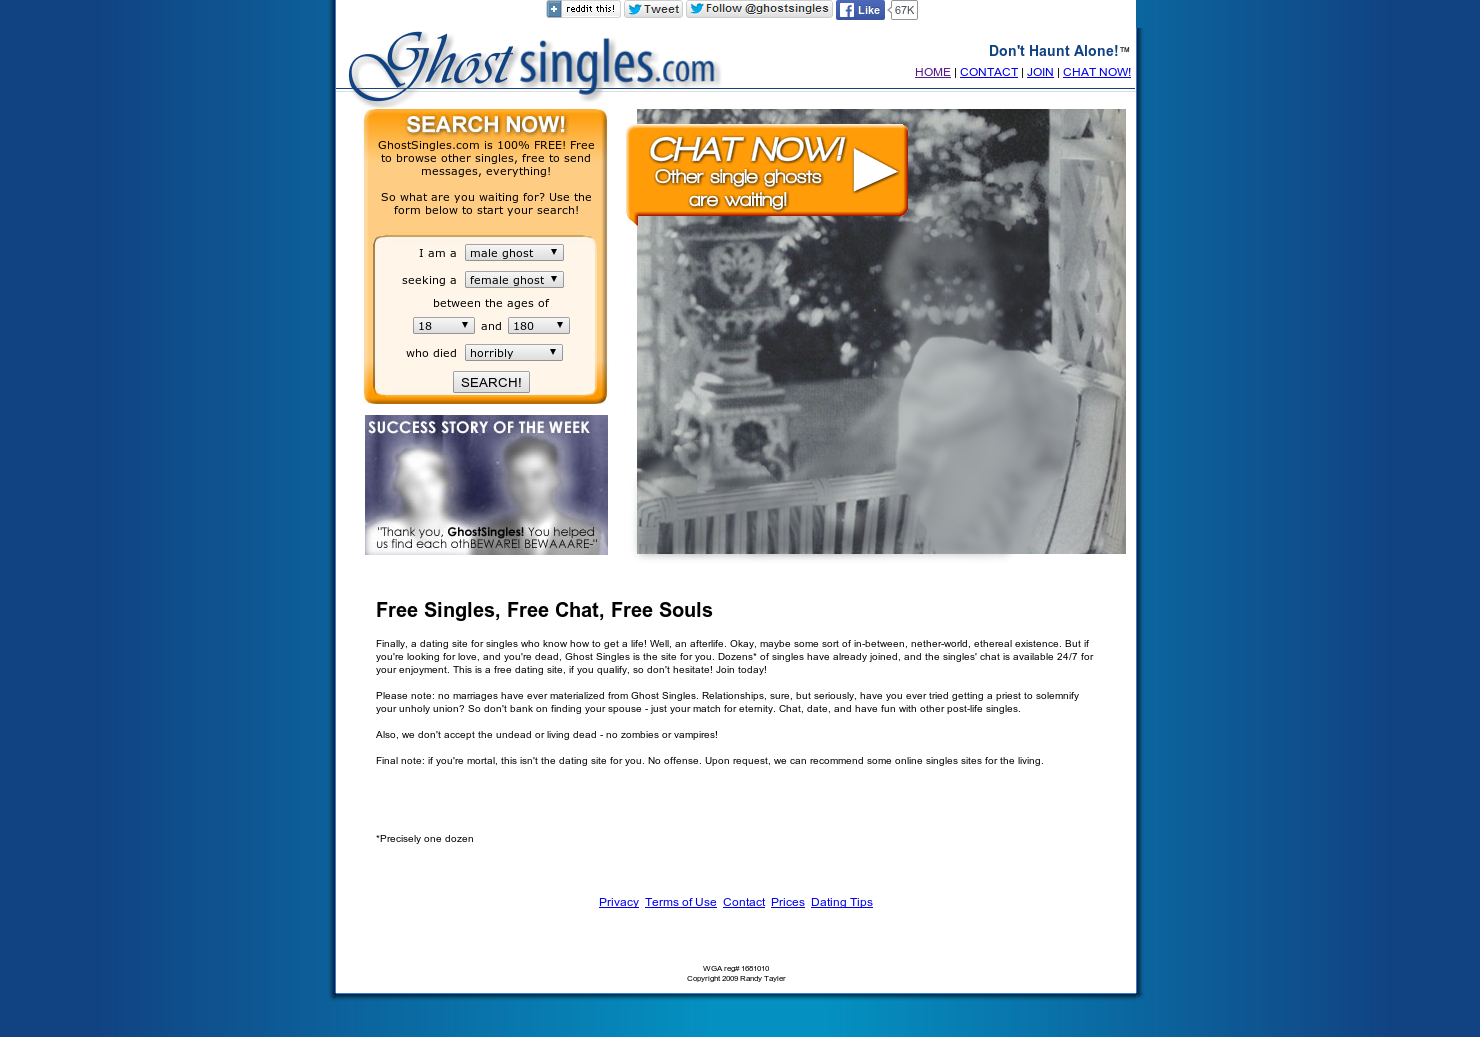 Online dating for ghosts